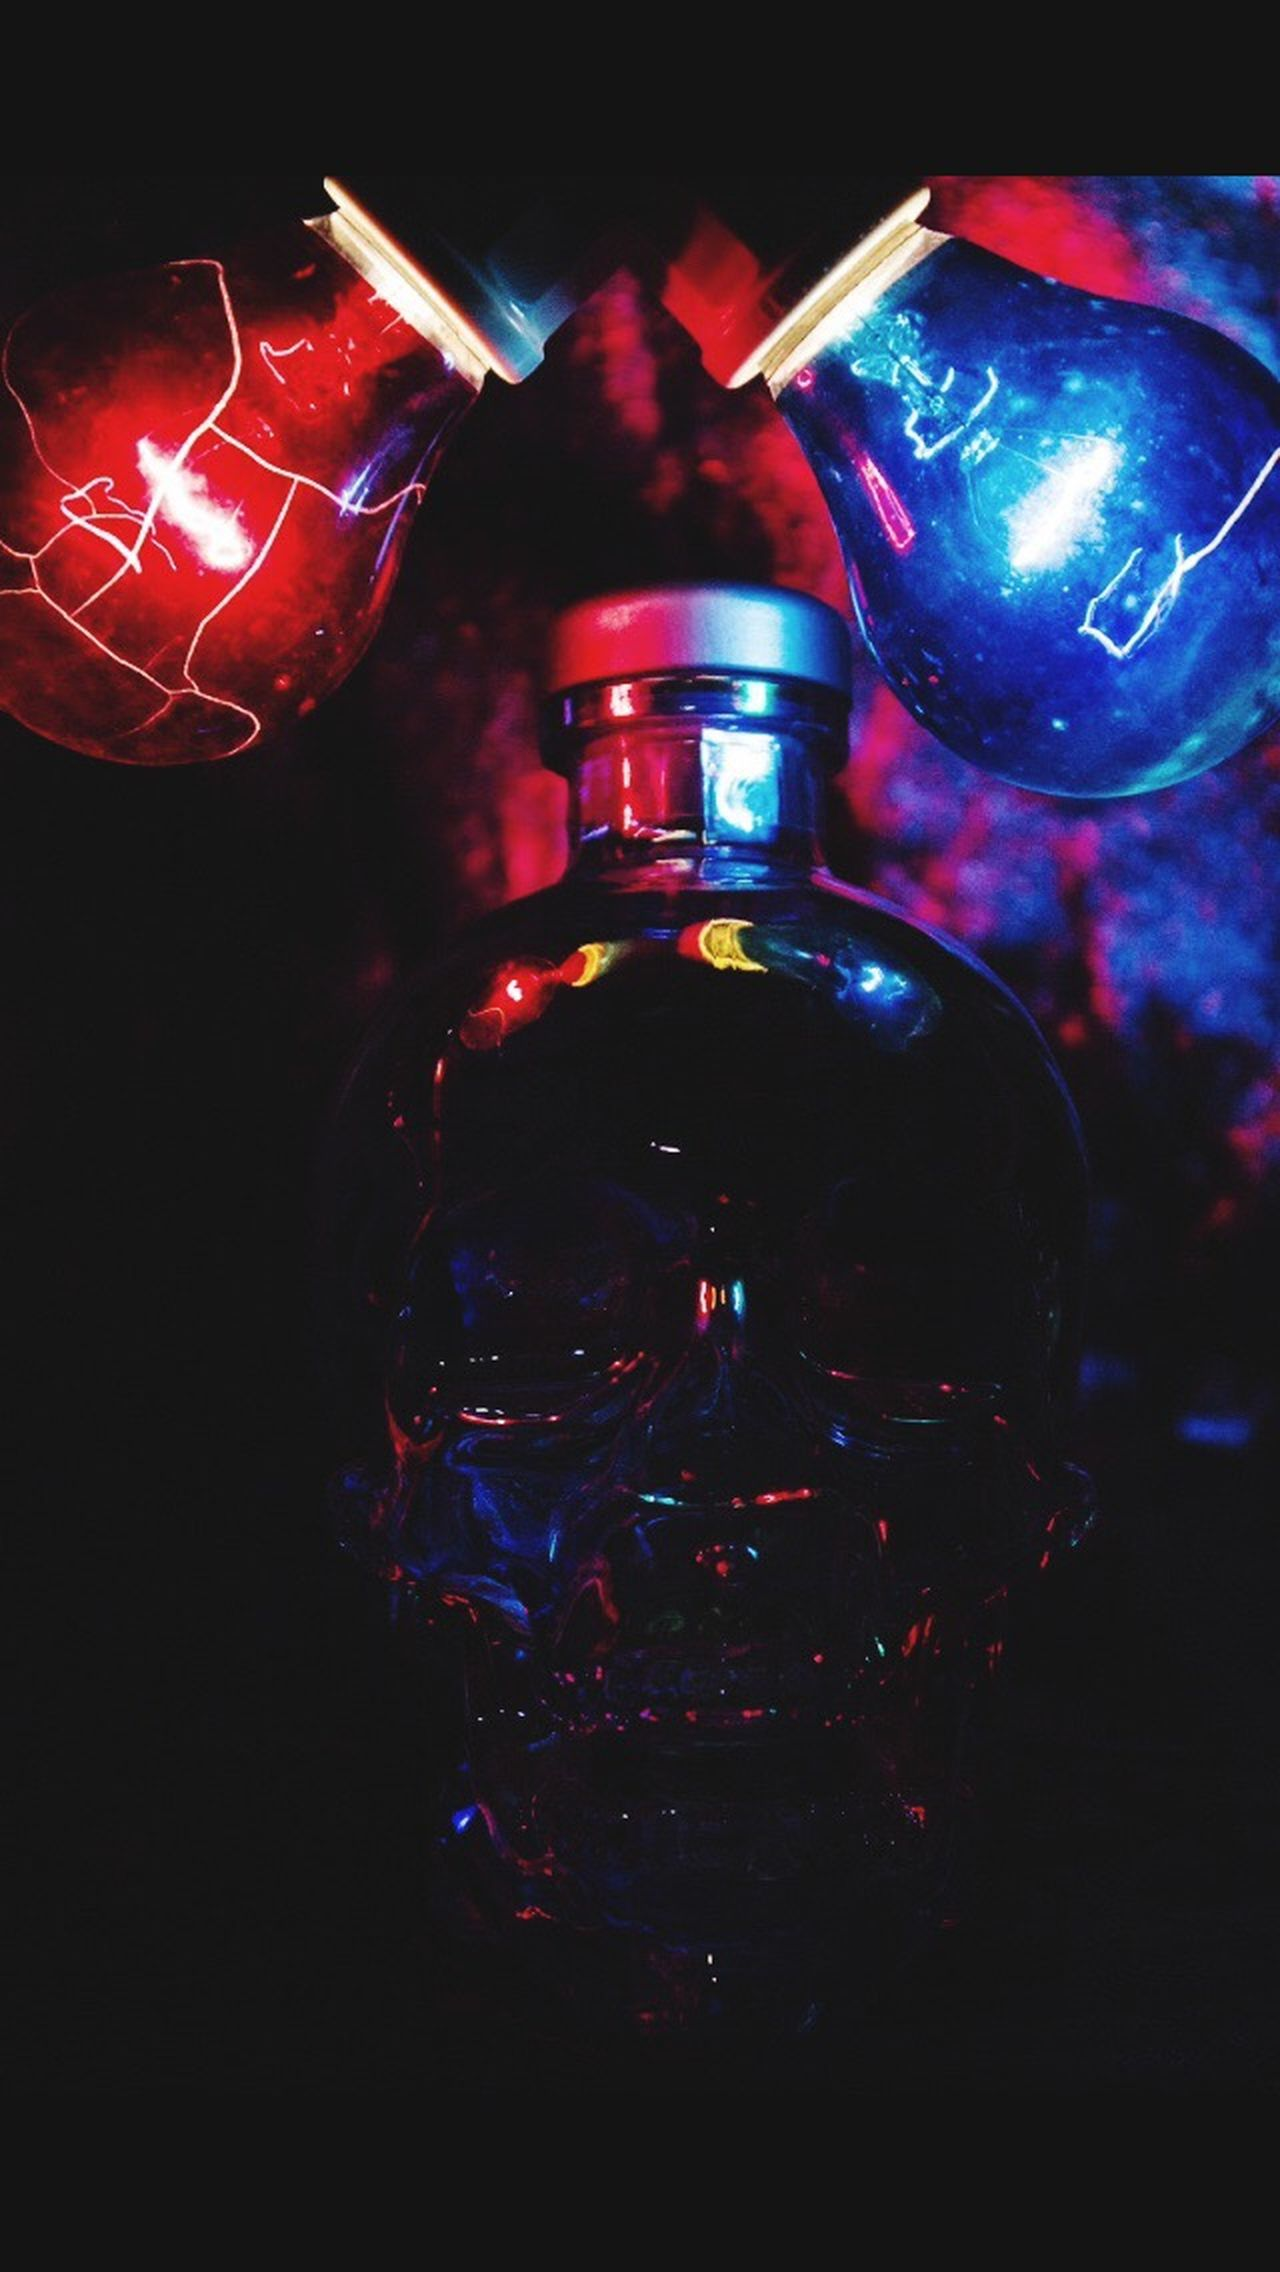 Crystalheadvodka Crystalhead Crystal Crystal Clear Lightbulb Red Blue Partylights Vodka🍹 Photography Skull Skulls Glassskull Glass Art Reflection